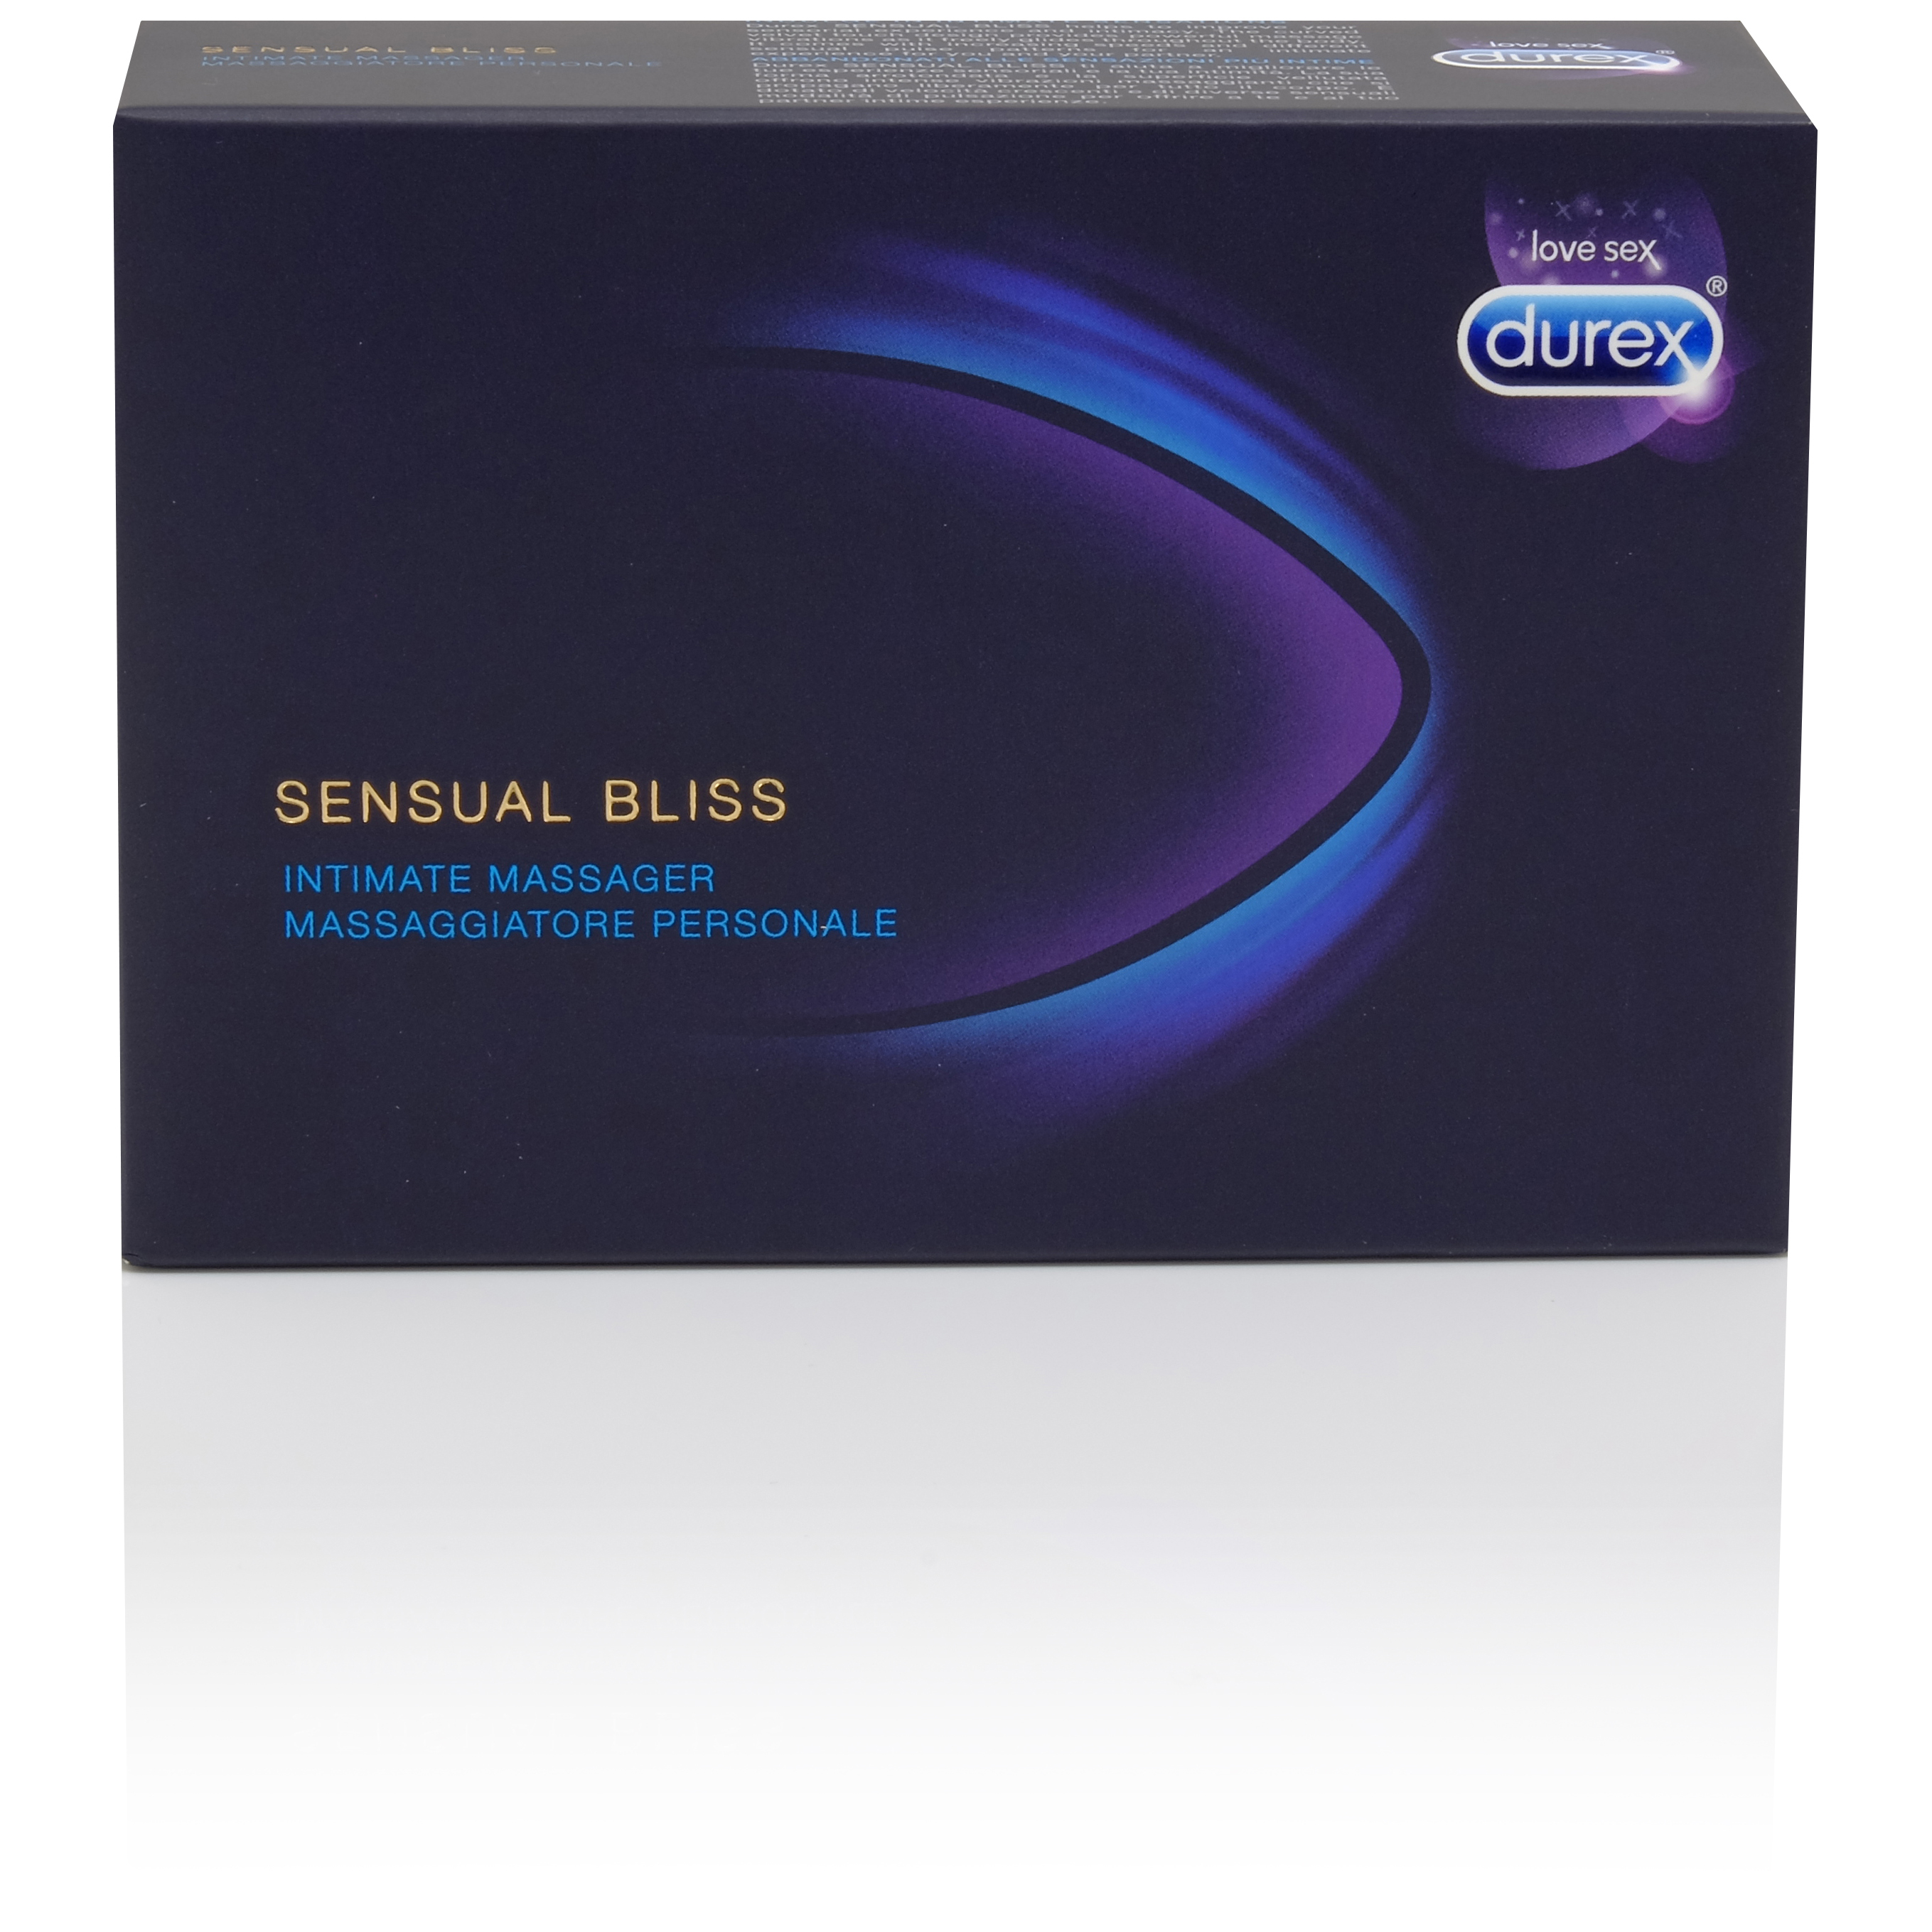 Durex Sensual Bliss Intimate Massager